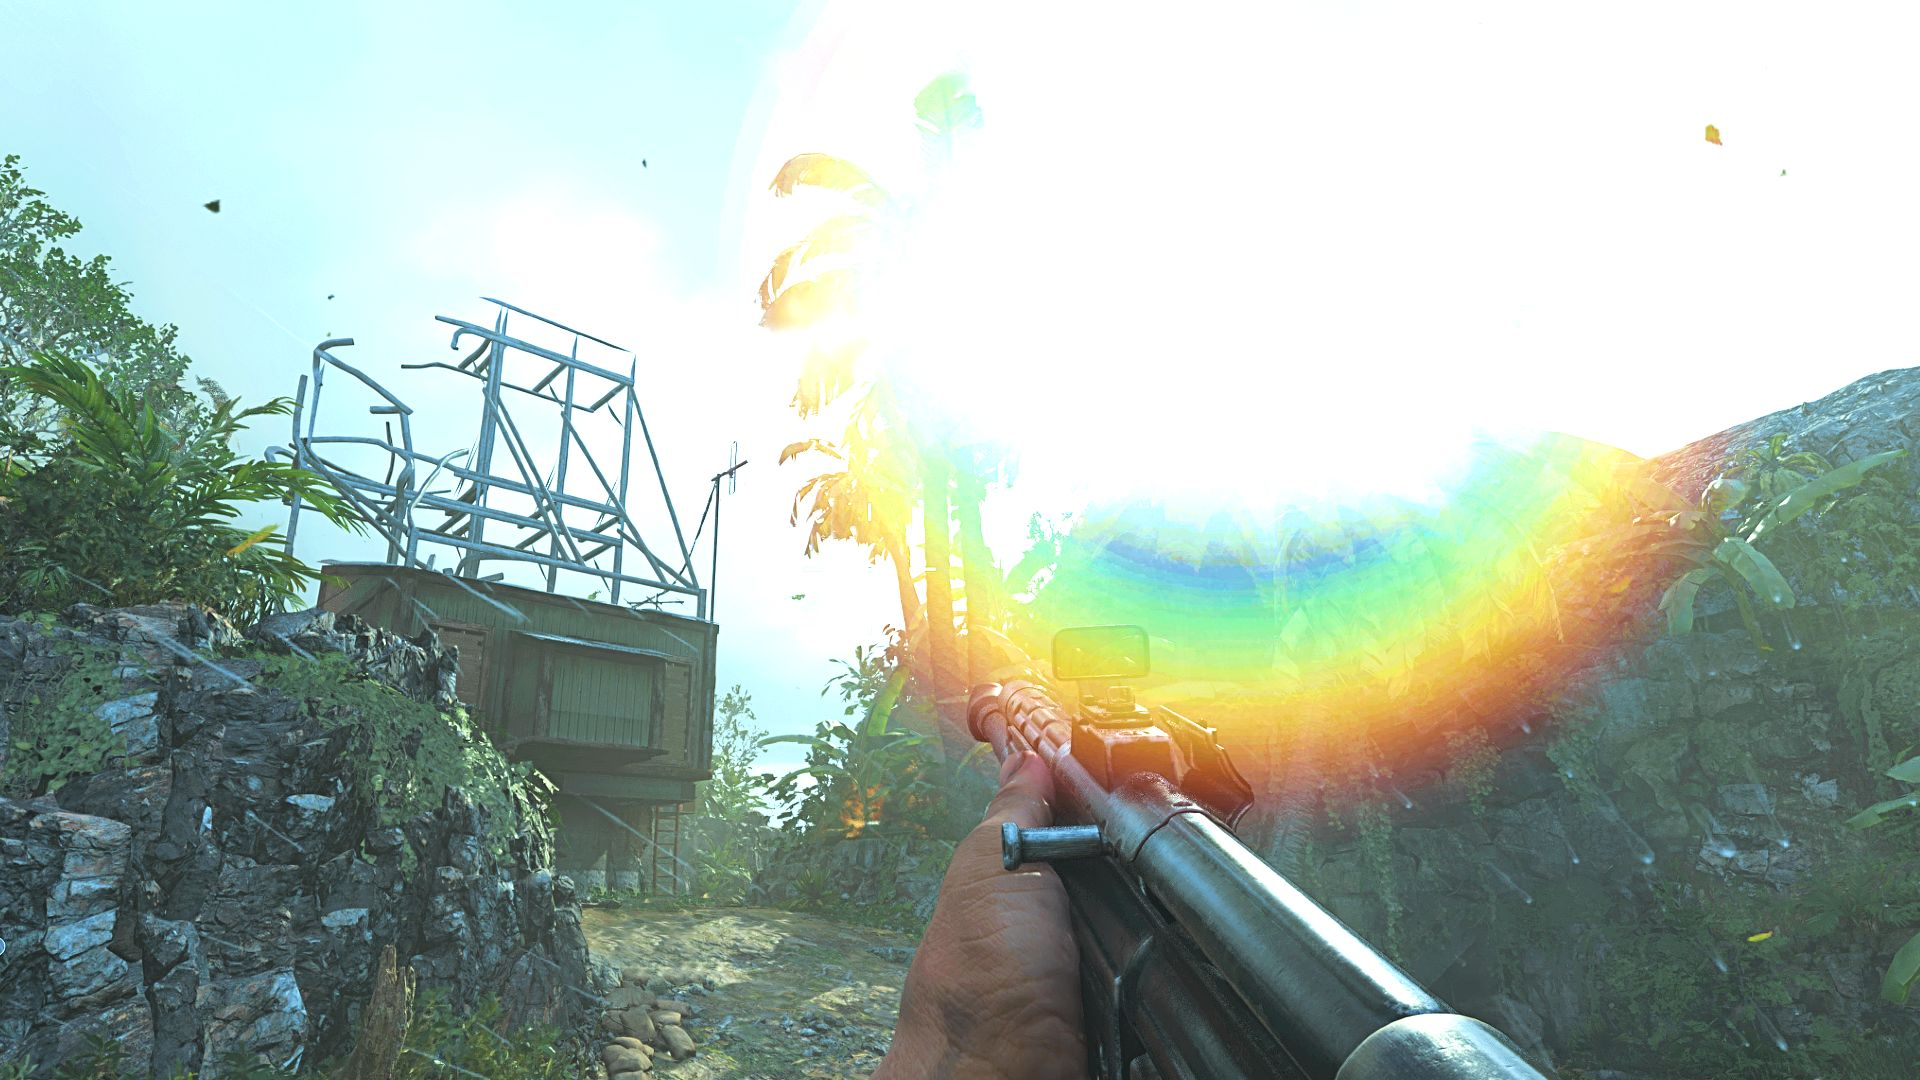 I played the Call of Duty: Vanguard beta and couldn't see anything